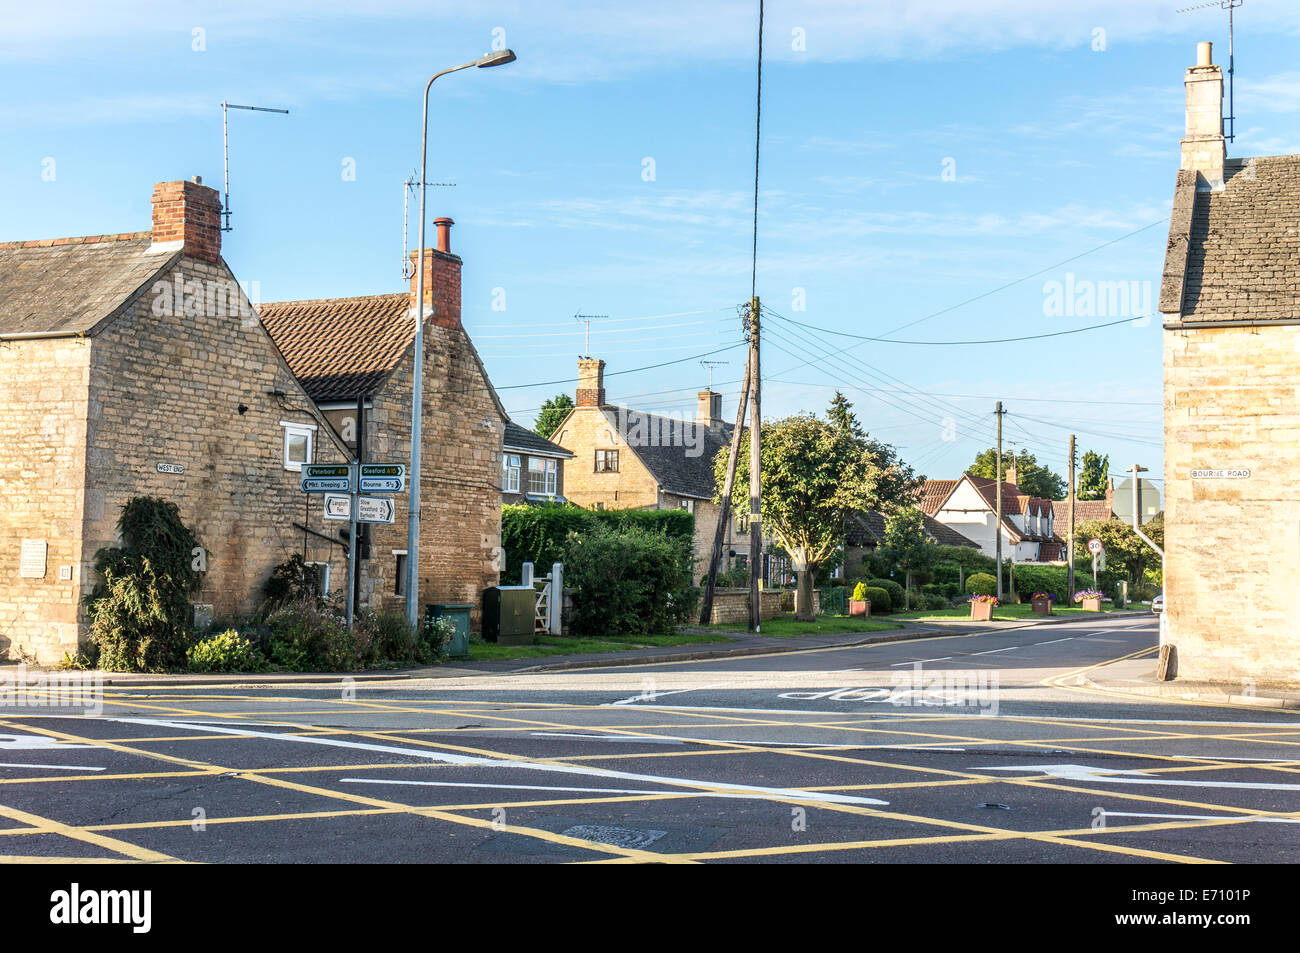 A15 crossroads looking onto West End, Langtoft, Lincolnshire, England, UK. - Stock Image